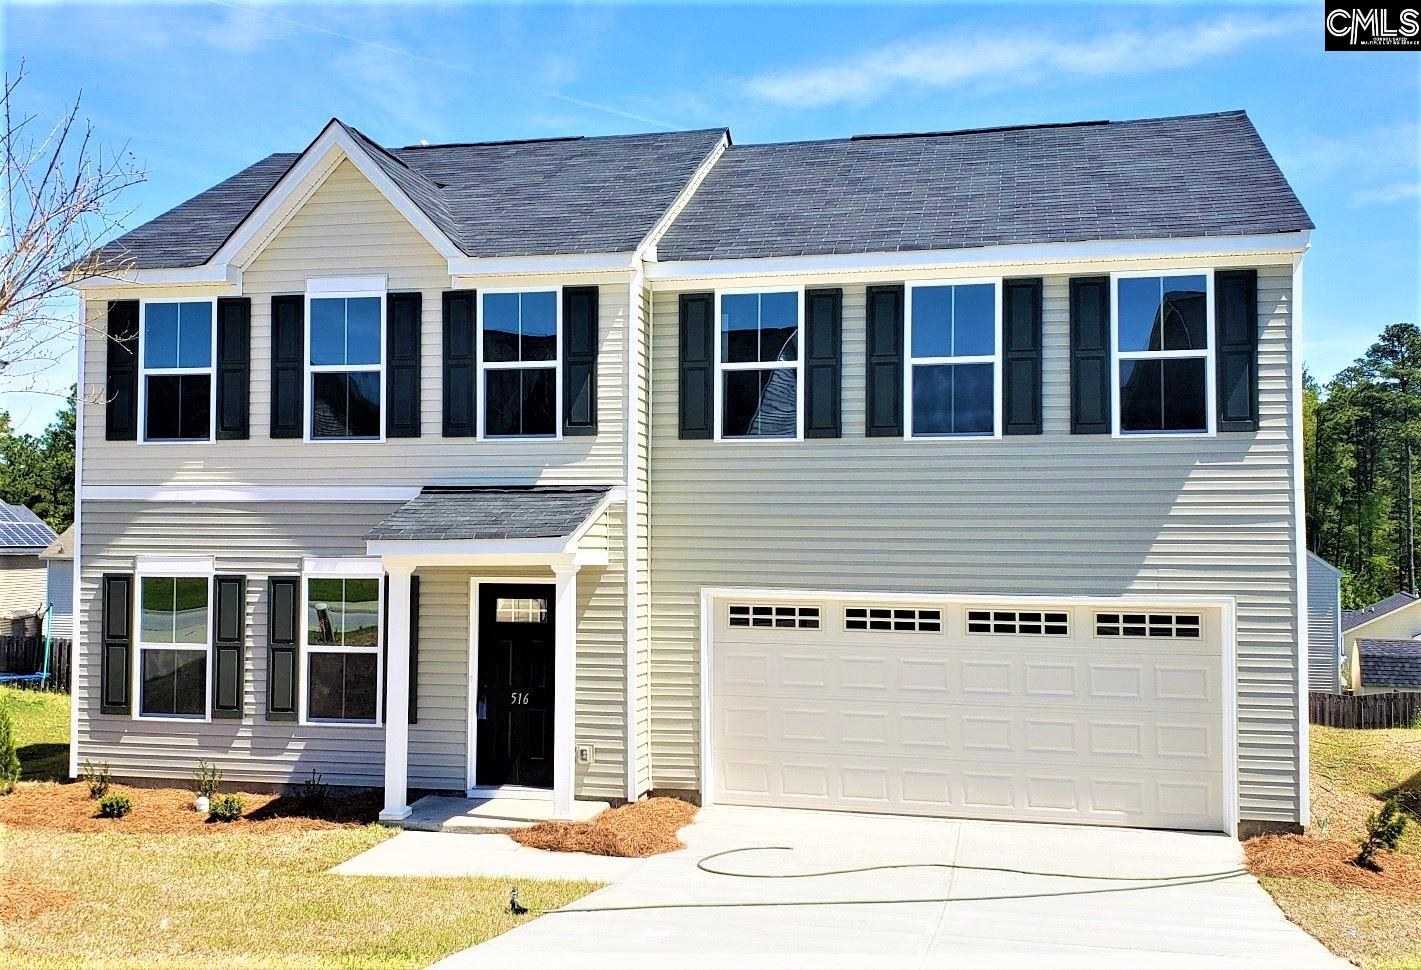 516 Sagauro Lexington, SC 29073